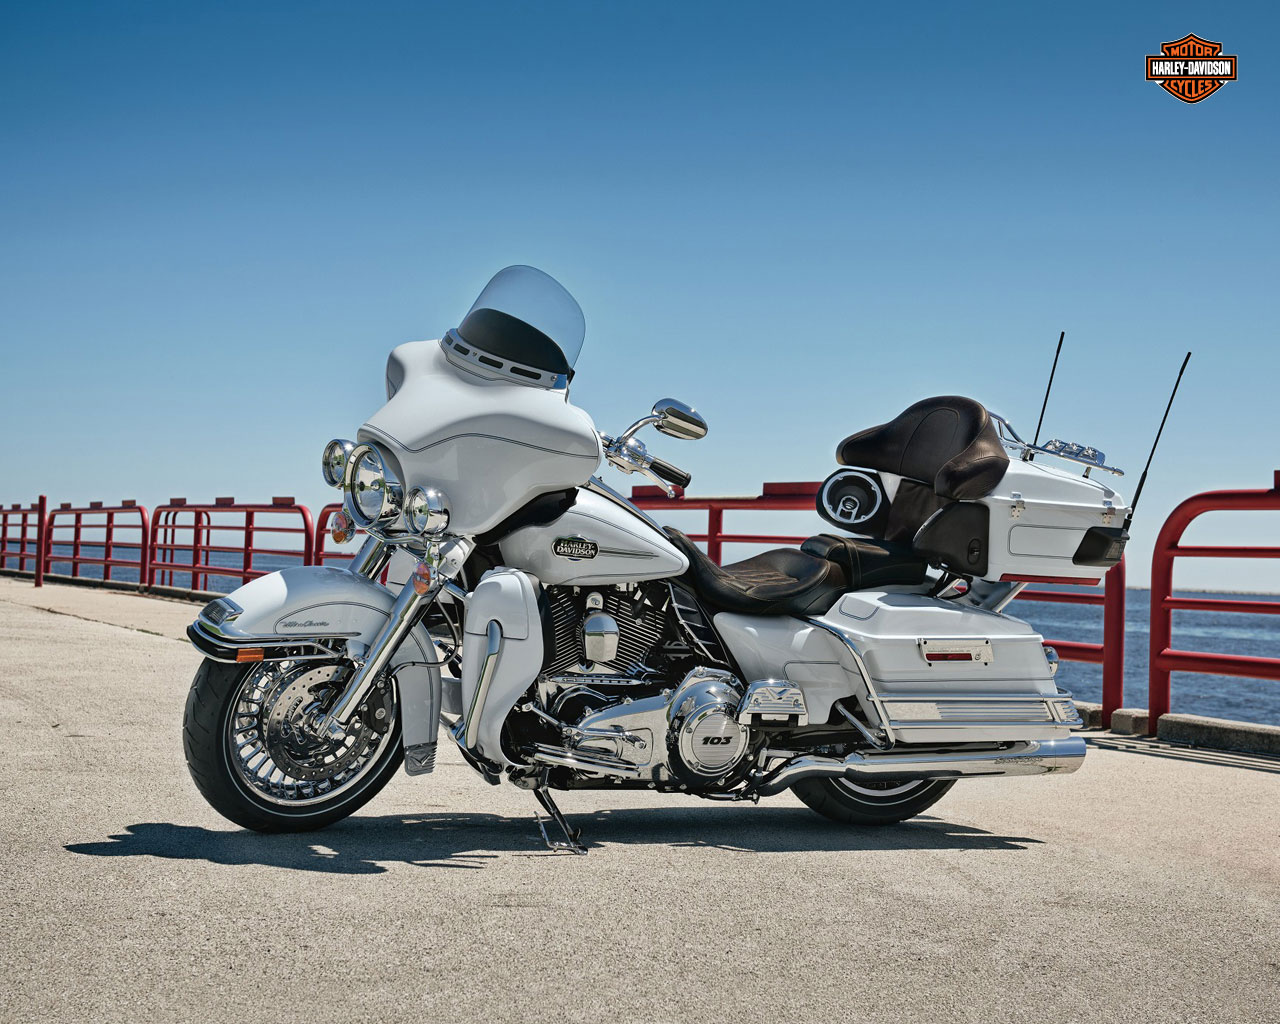 Harley-Davidson FLHTC Electra Glide Classic 2002 pics #17759